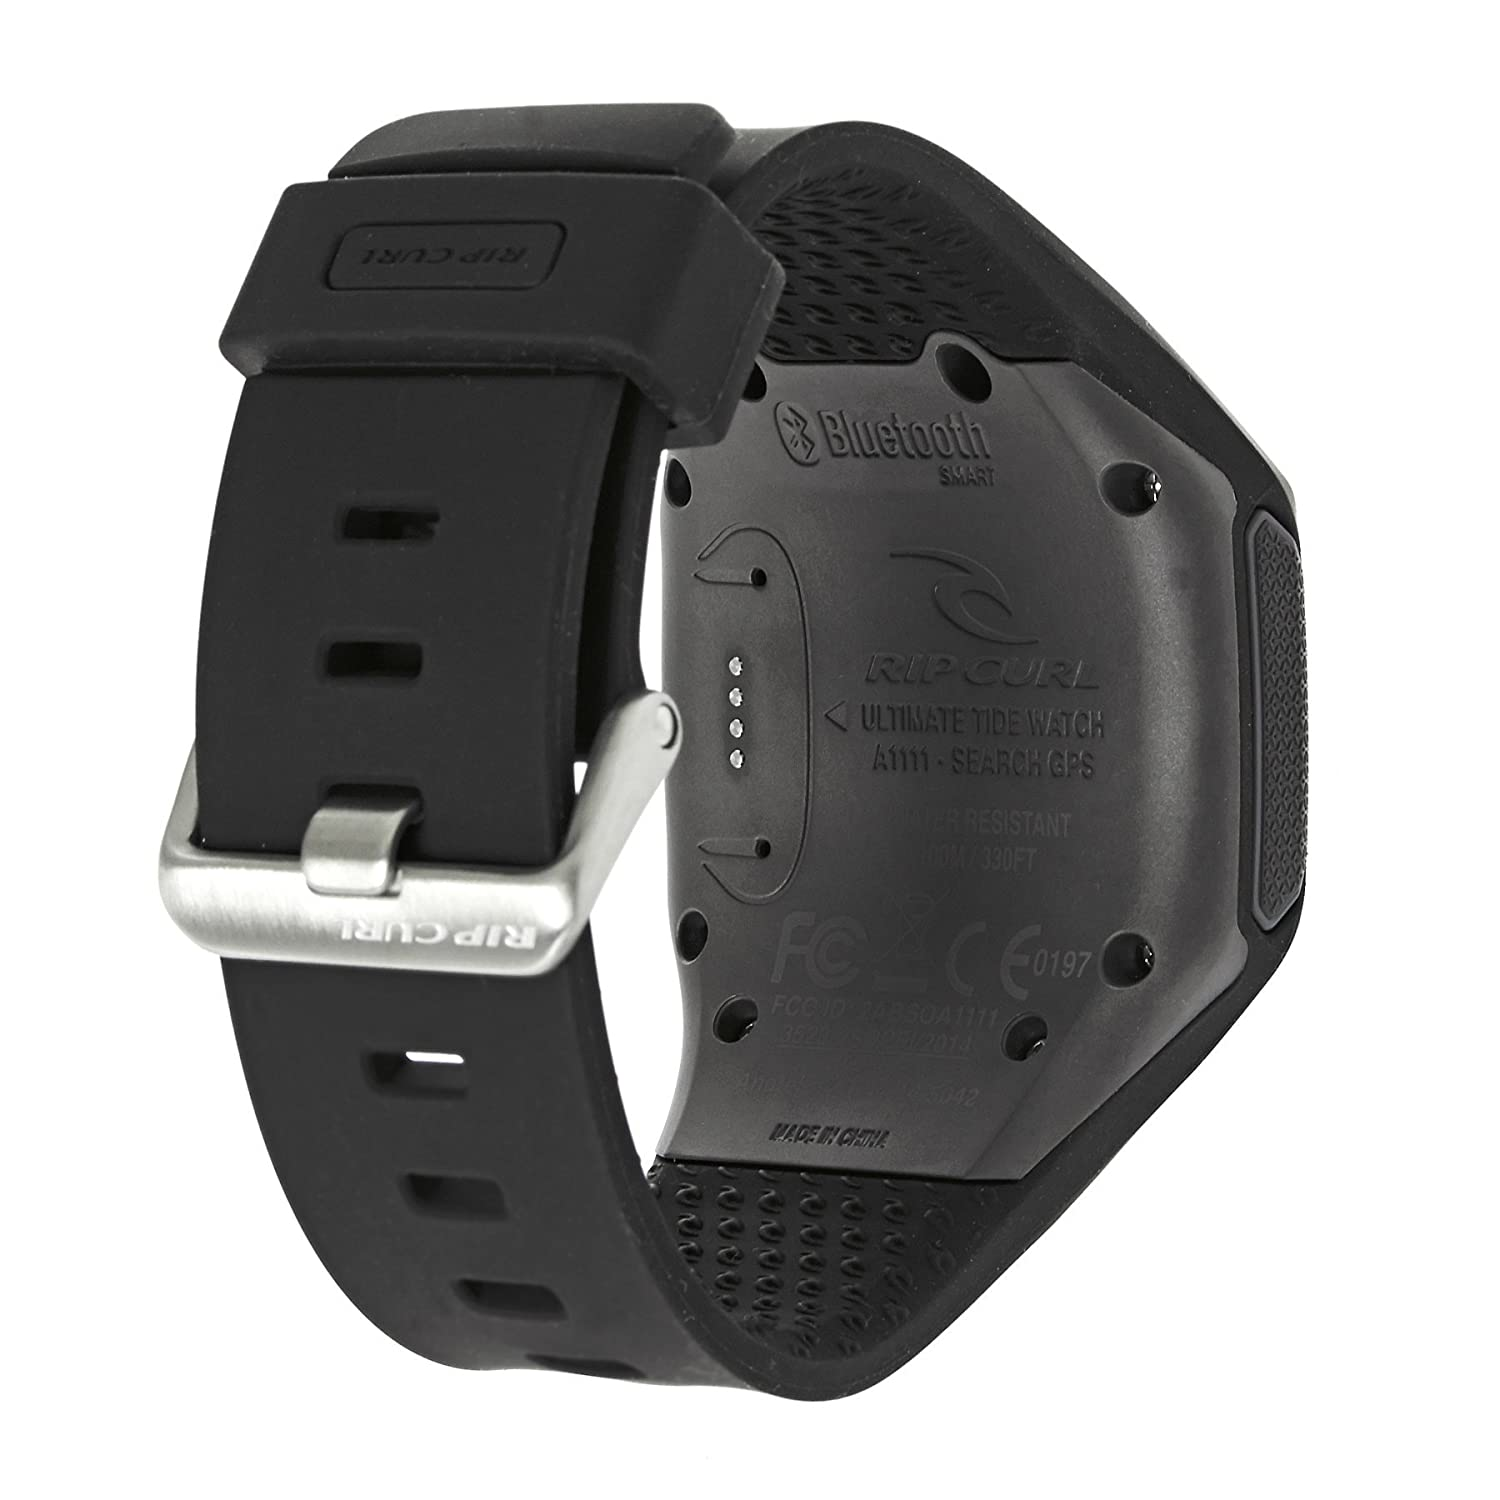 Rip Curl SearchGPS Smart Surf Watch in BLACK A1111  Amazon.es  Deportes y  aire libre 85cd7db858d